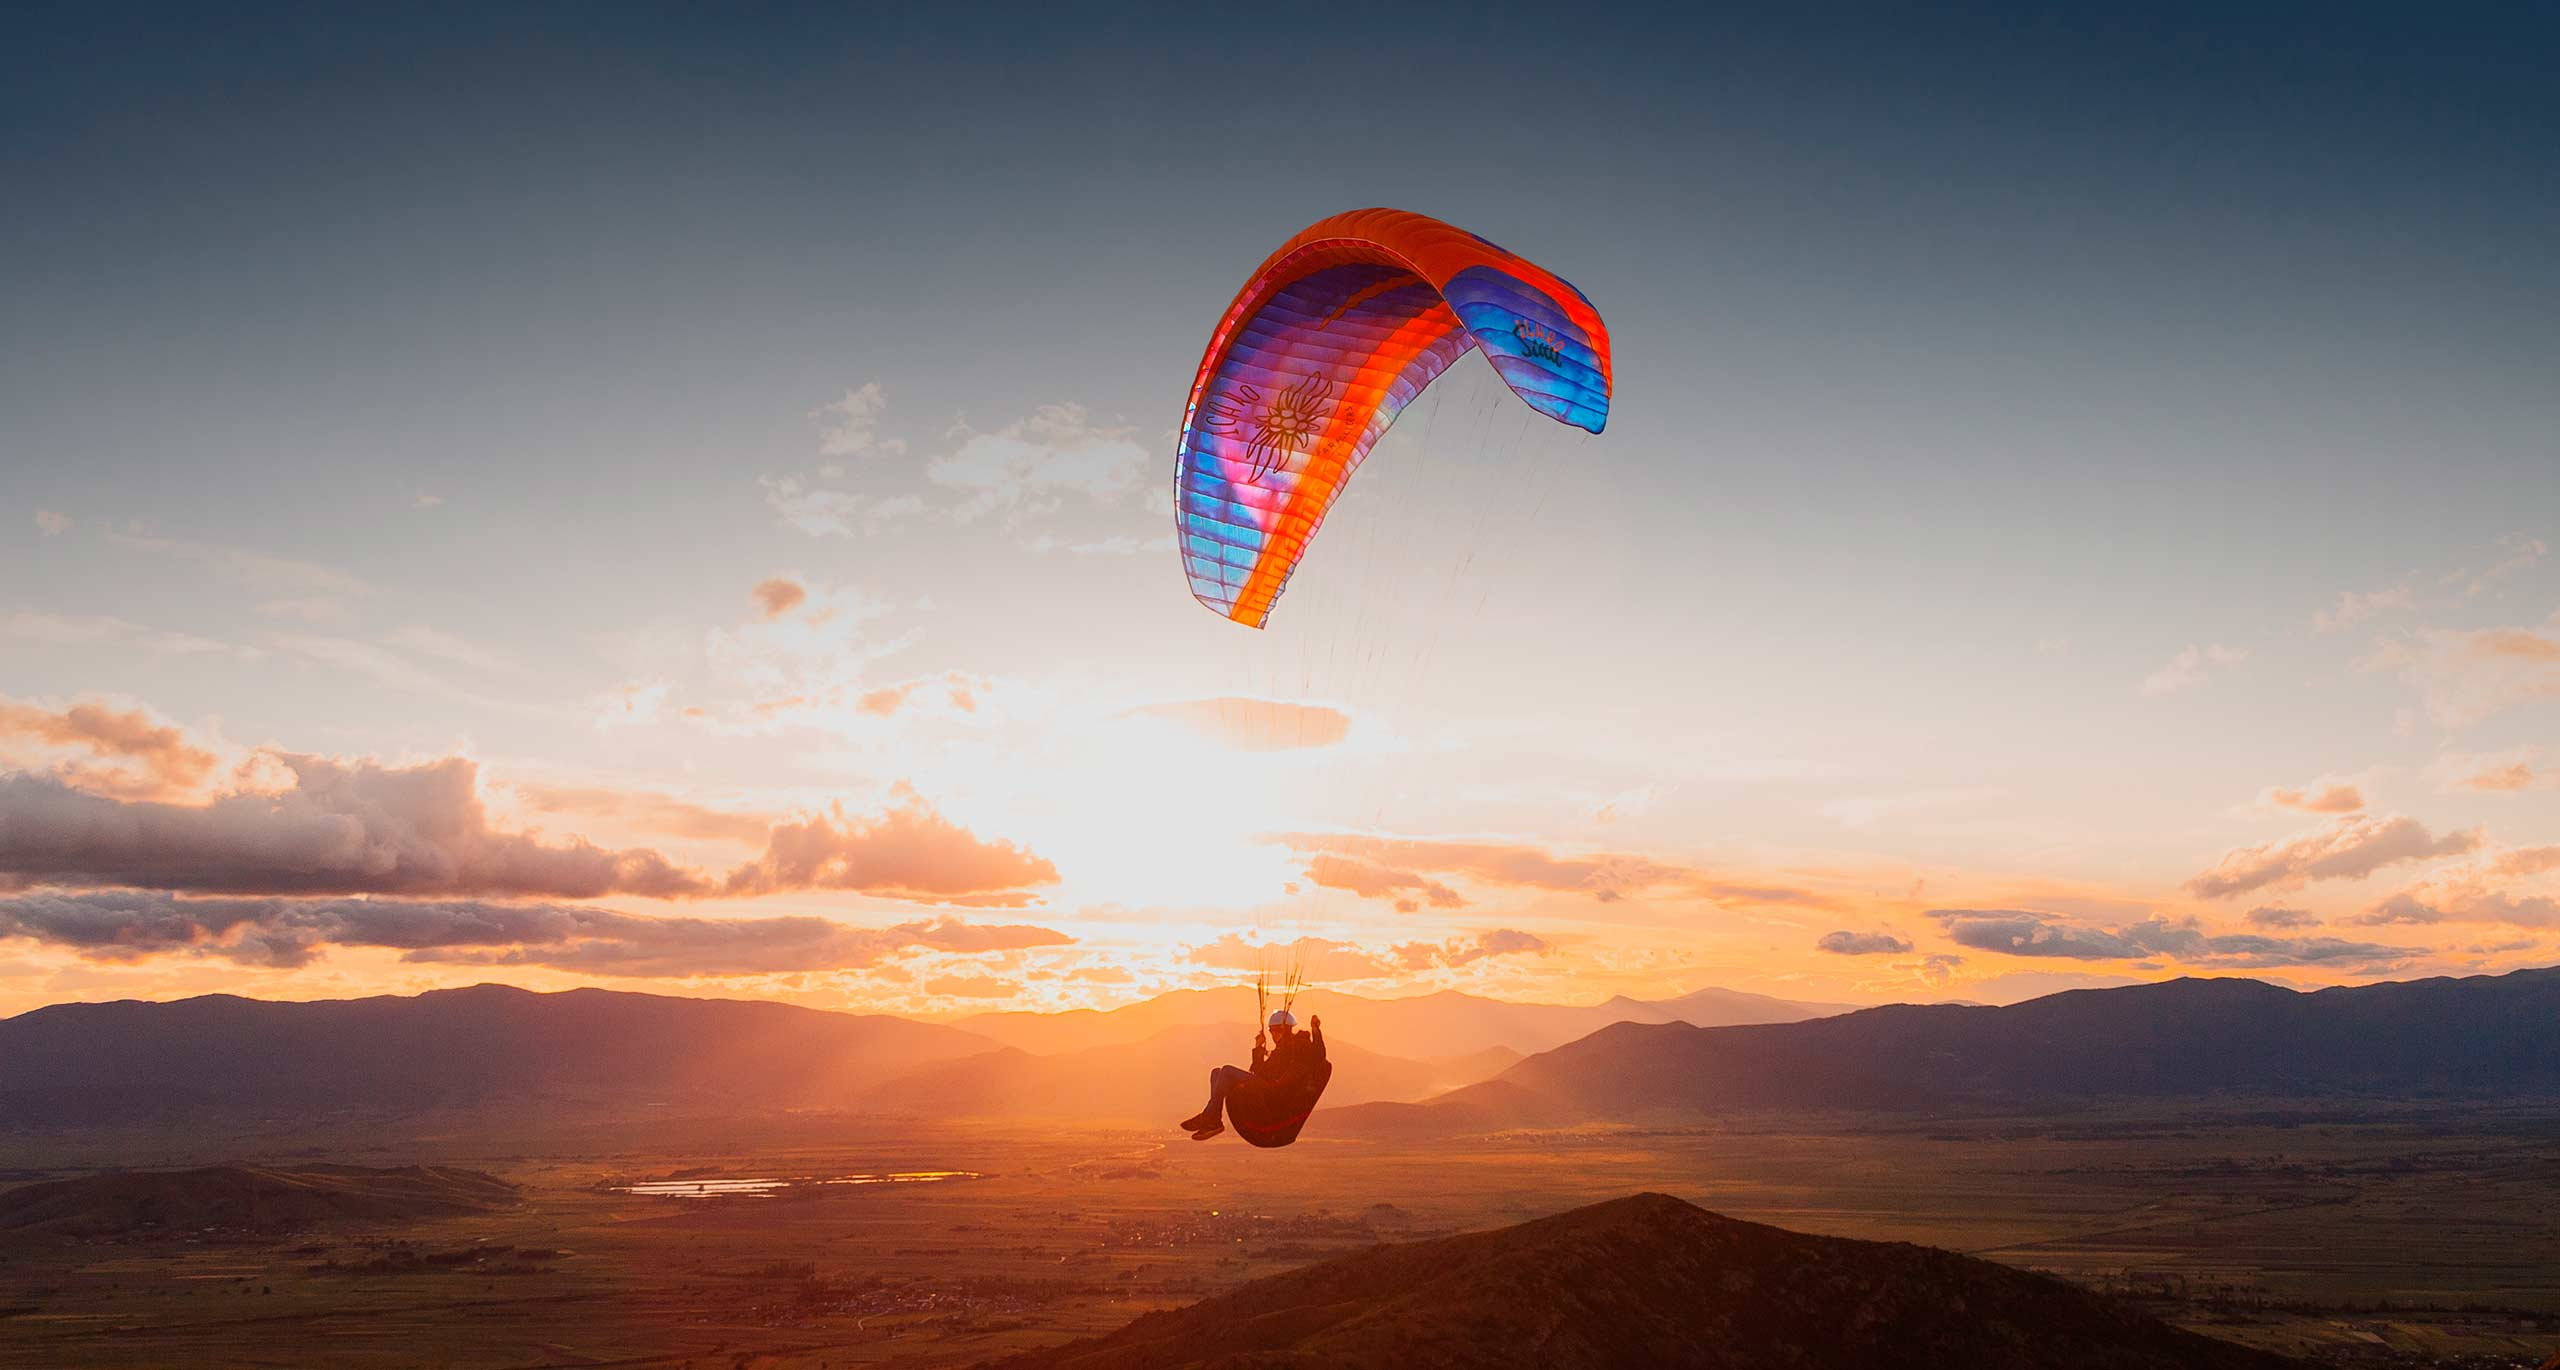 Paragliding in Vietnam: Everything You Need To Know About Paragliding